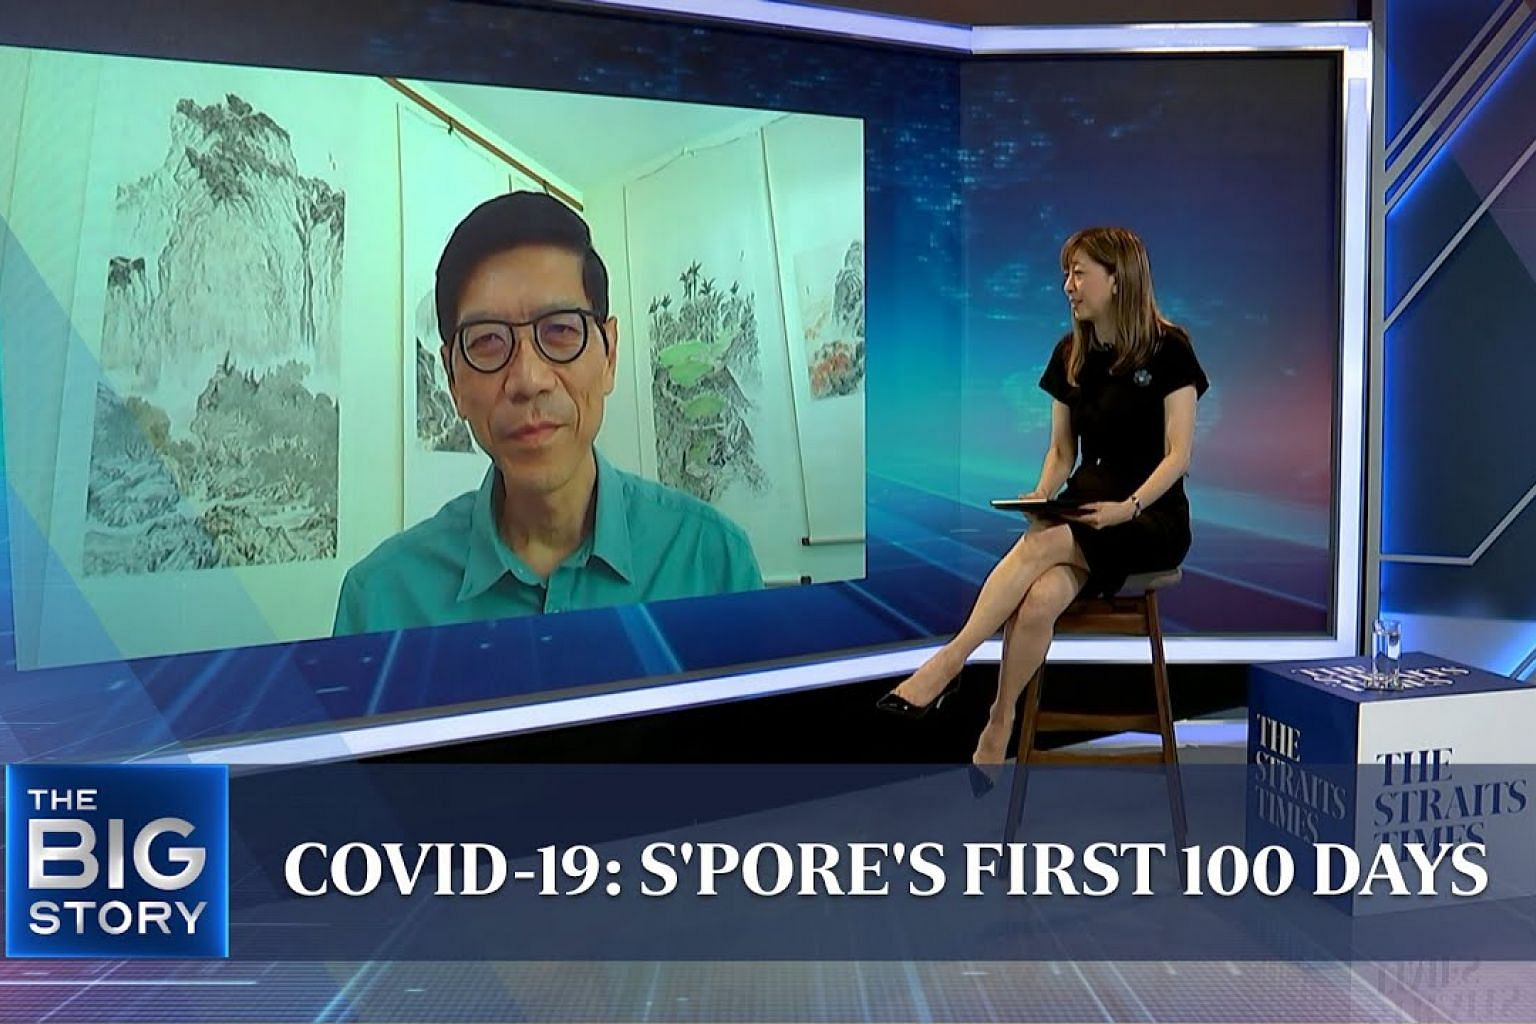 S'pore's Covid-19 fight nears 100 days   Covid-19 vs Sars: Lessons learnt   THE BIG STORY